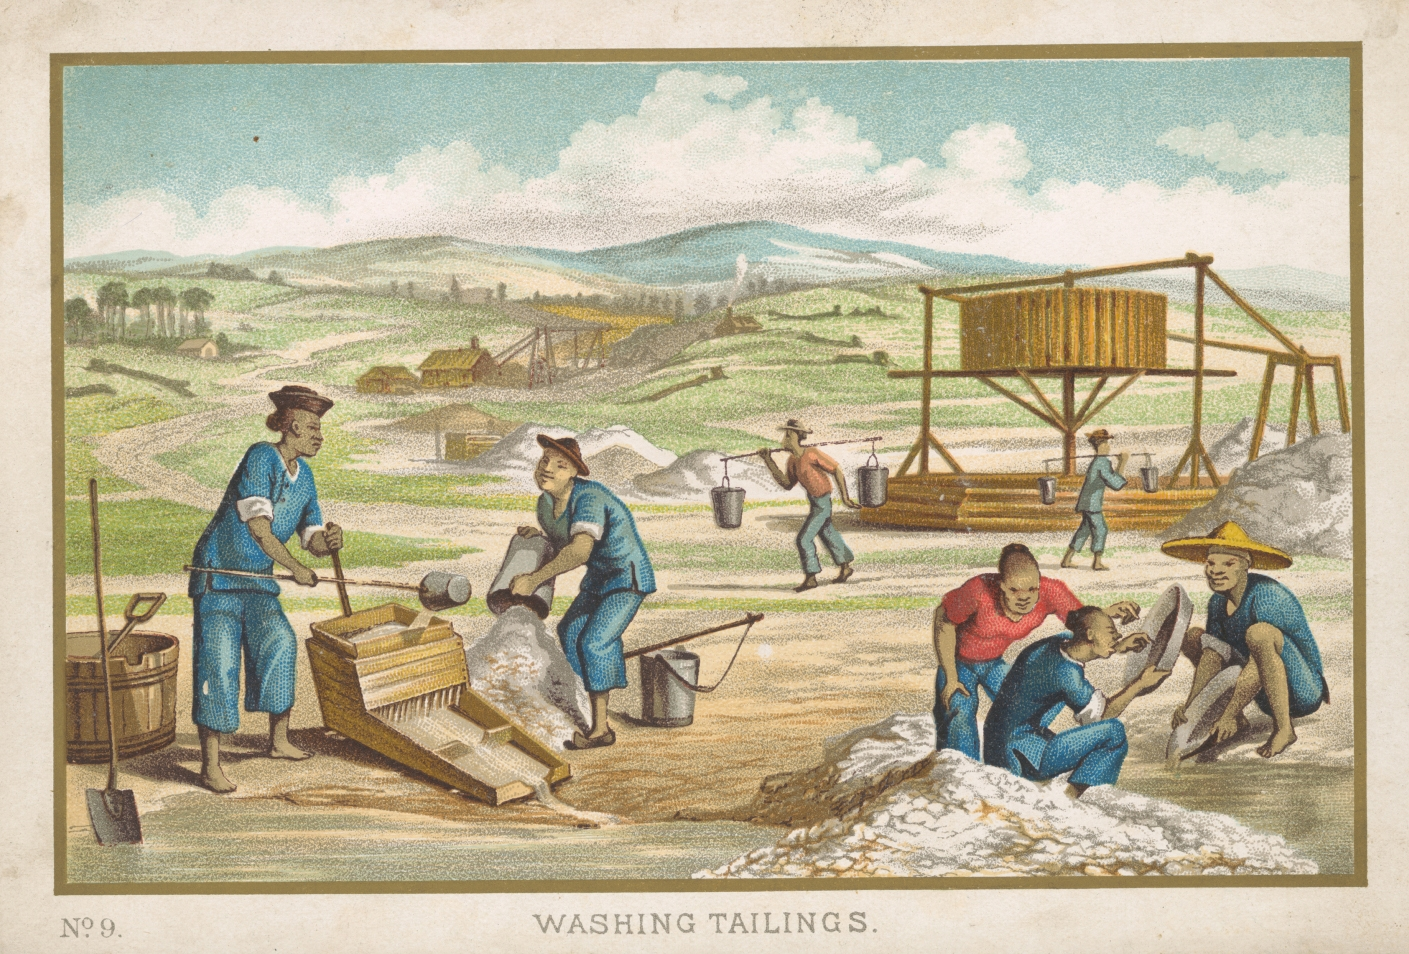 Illustration of goldfields with figures dressed in Chinese-style clothing working.